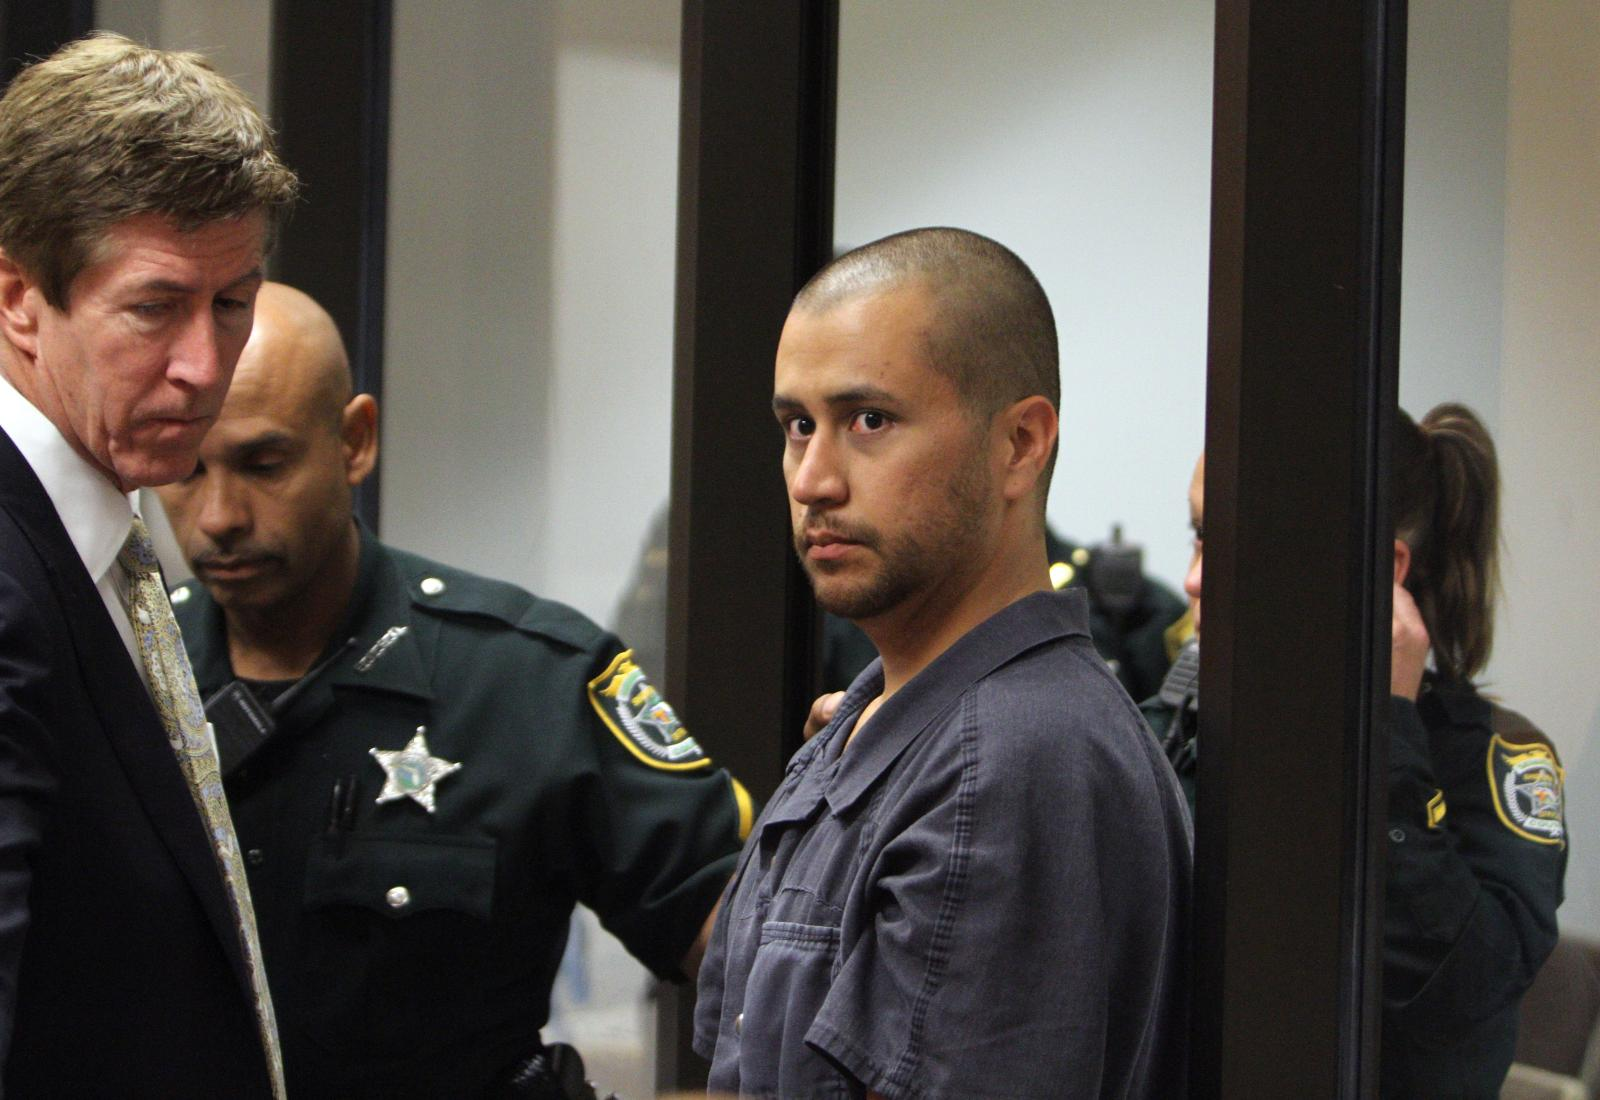 George Zimmerman Myspace Page: Trayvon Martin Shooter Called Mexicans 'Wanna be Thugs'